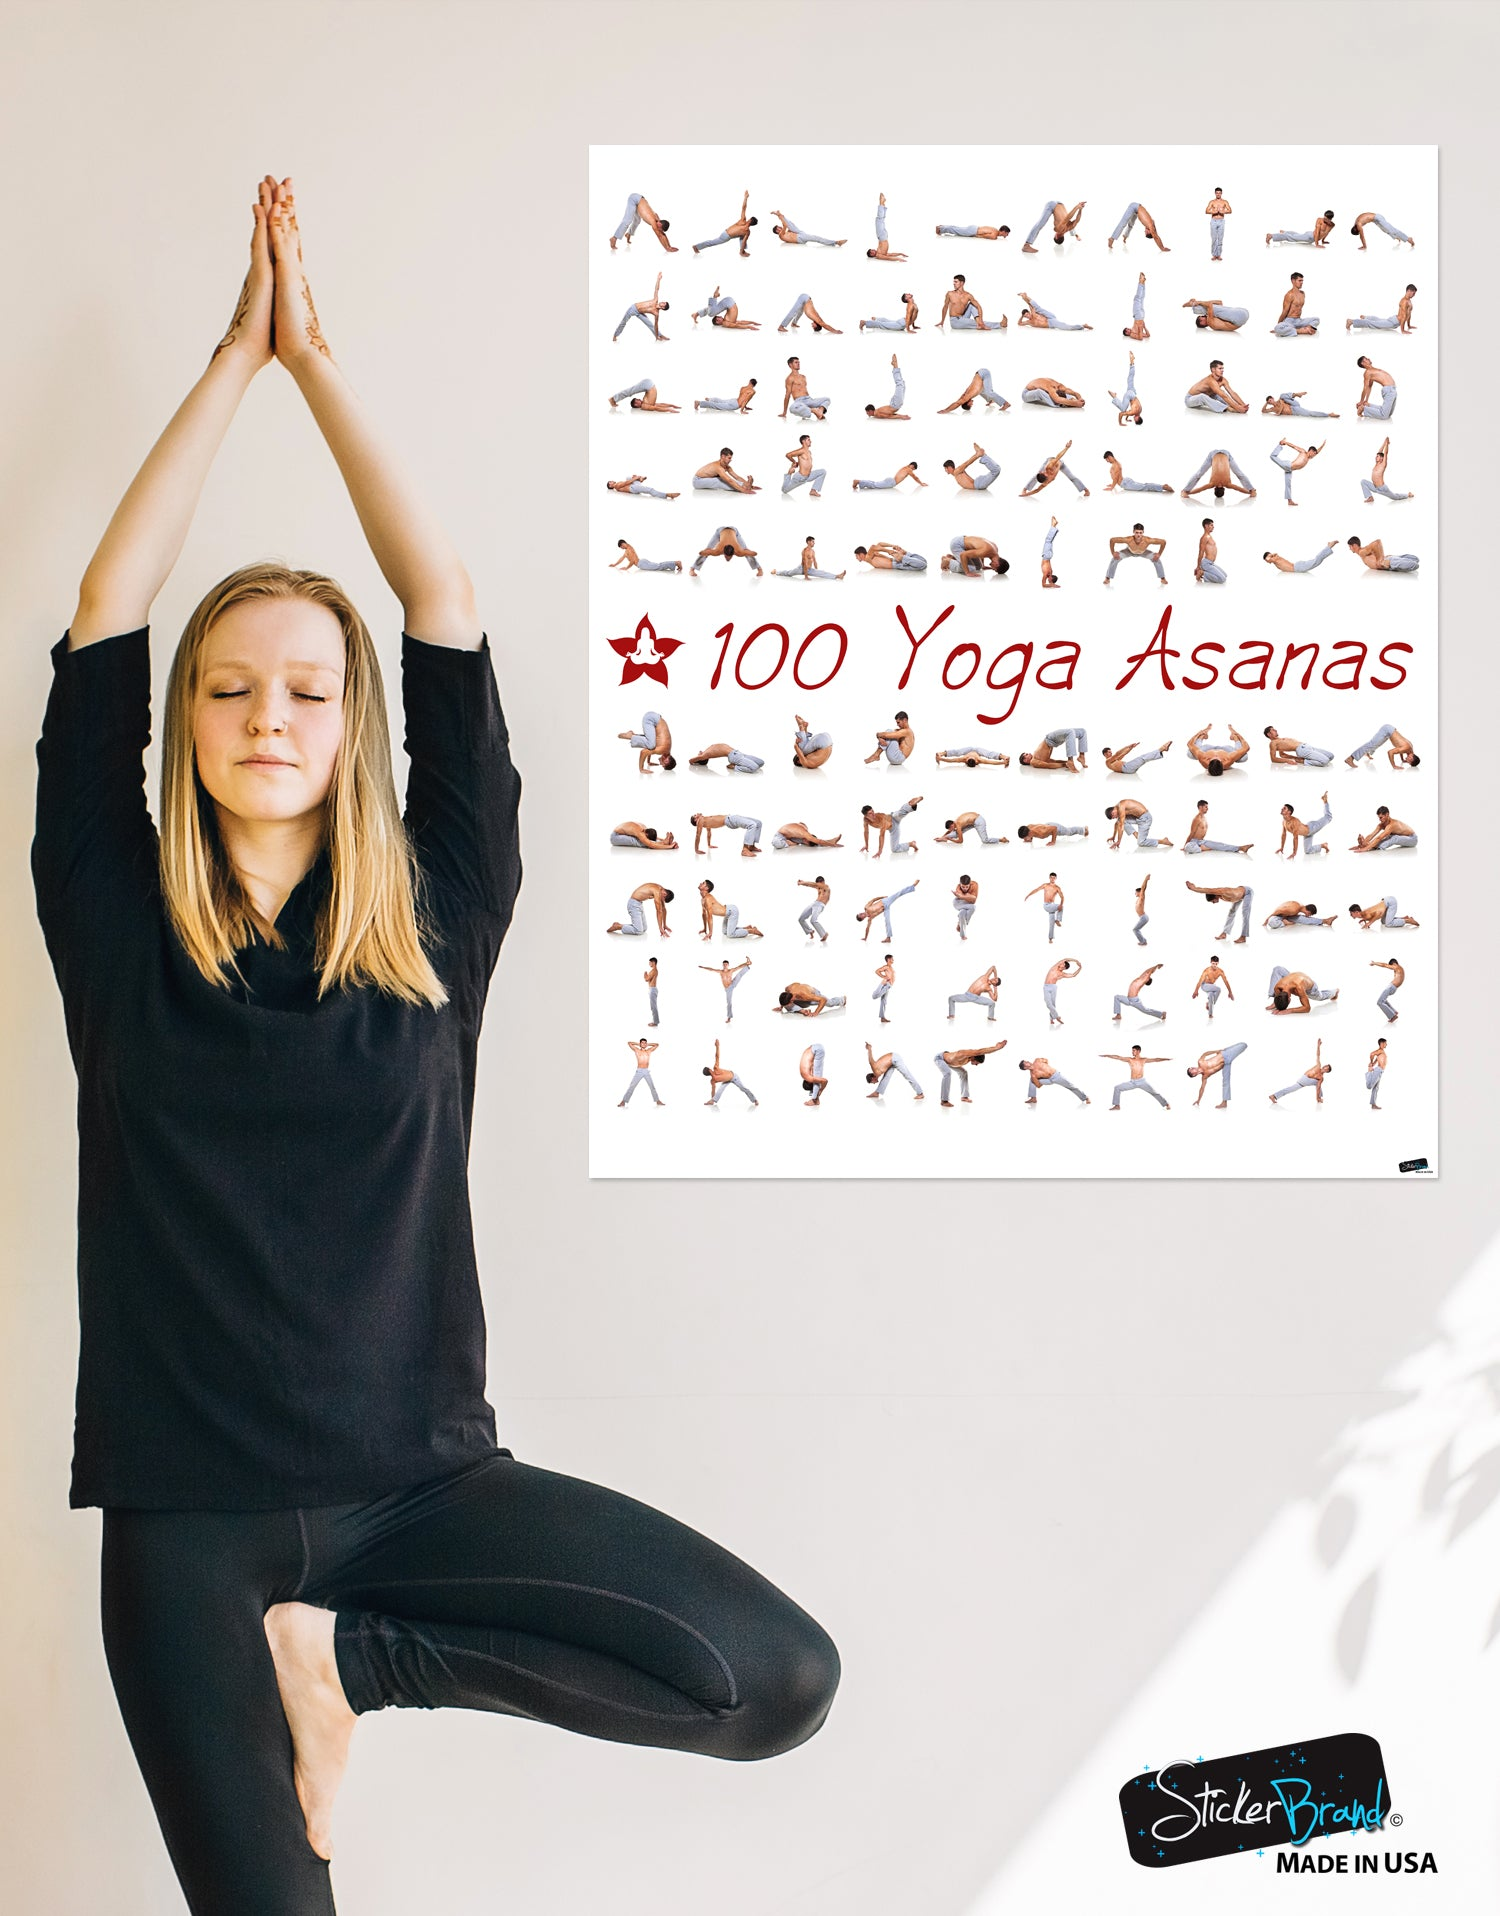 100 Yoga Poses Asanas Poster Instructional Graphic Poster For Yoga St